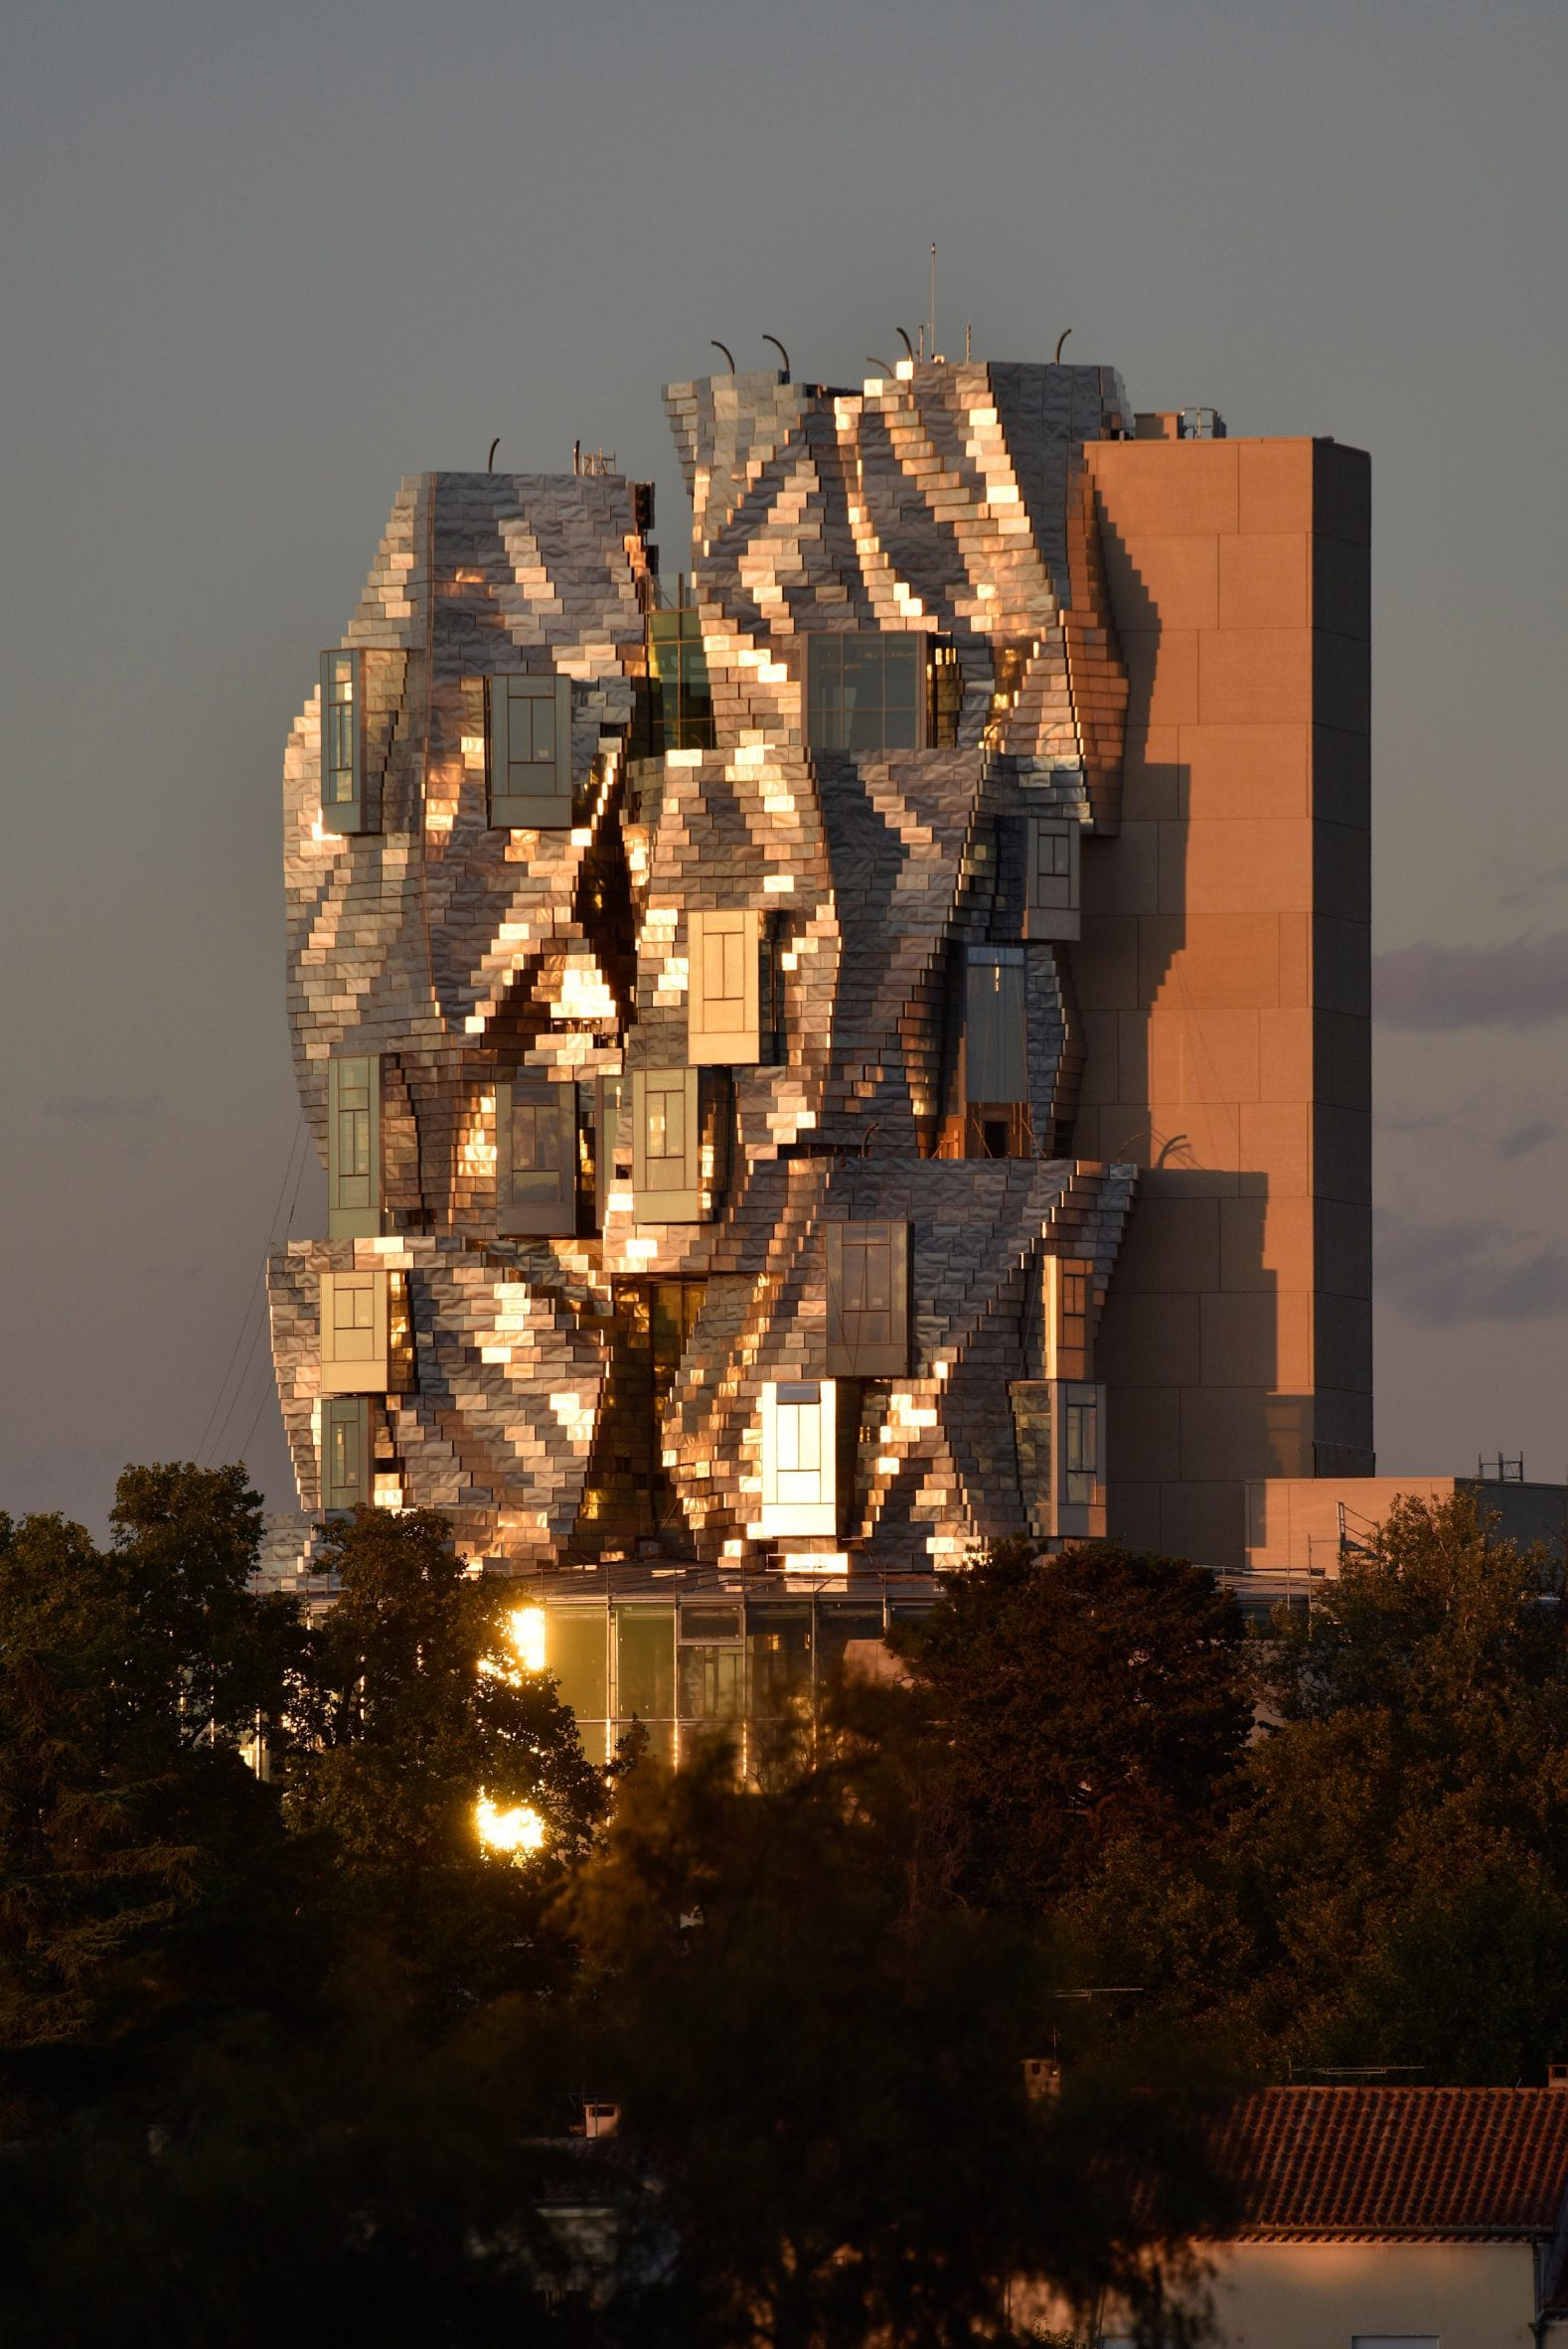 Reflections of The Tower by Frank Gehry